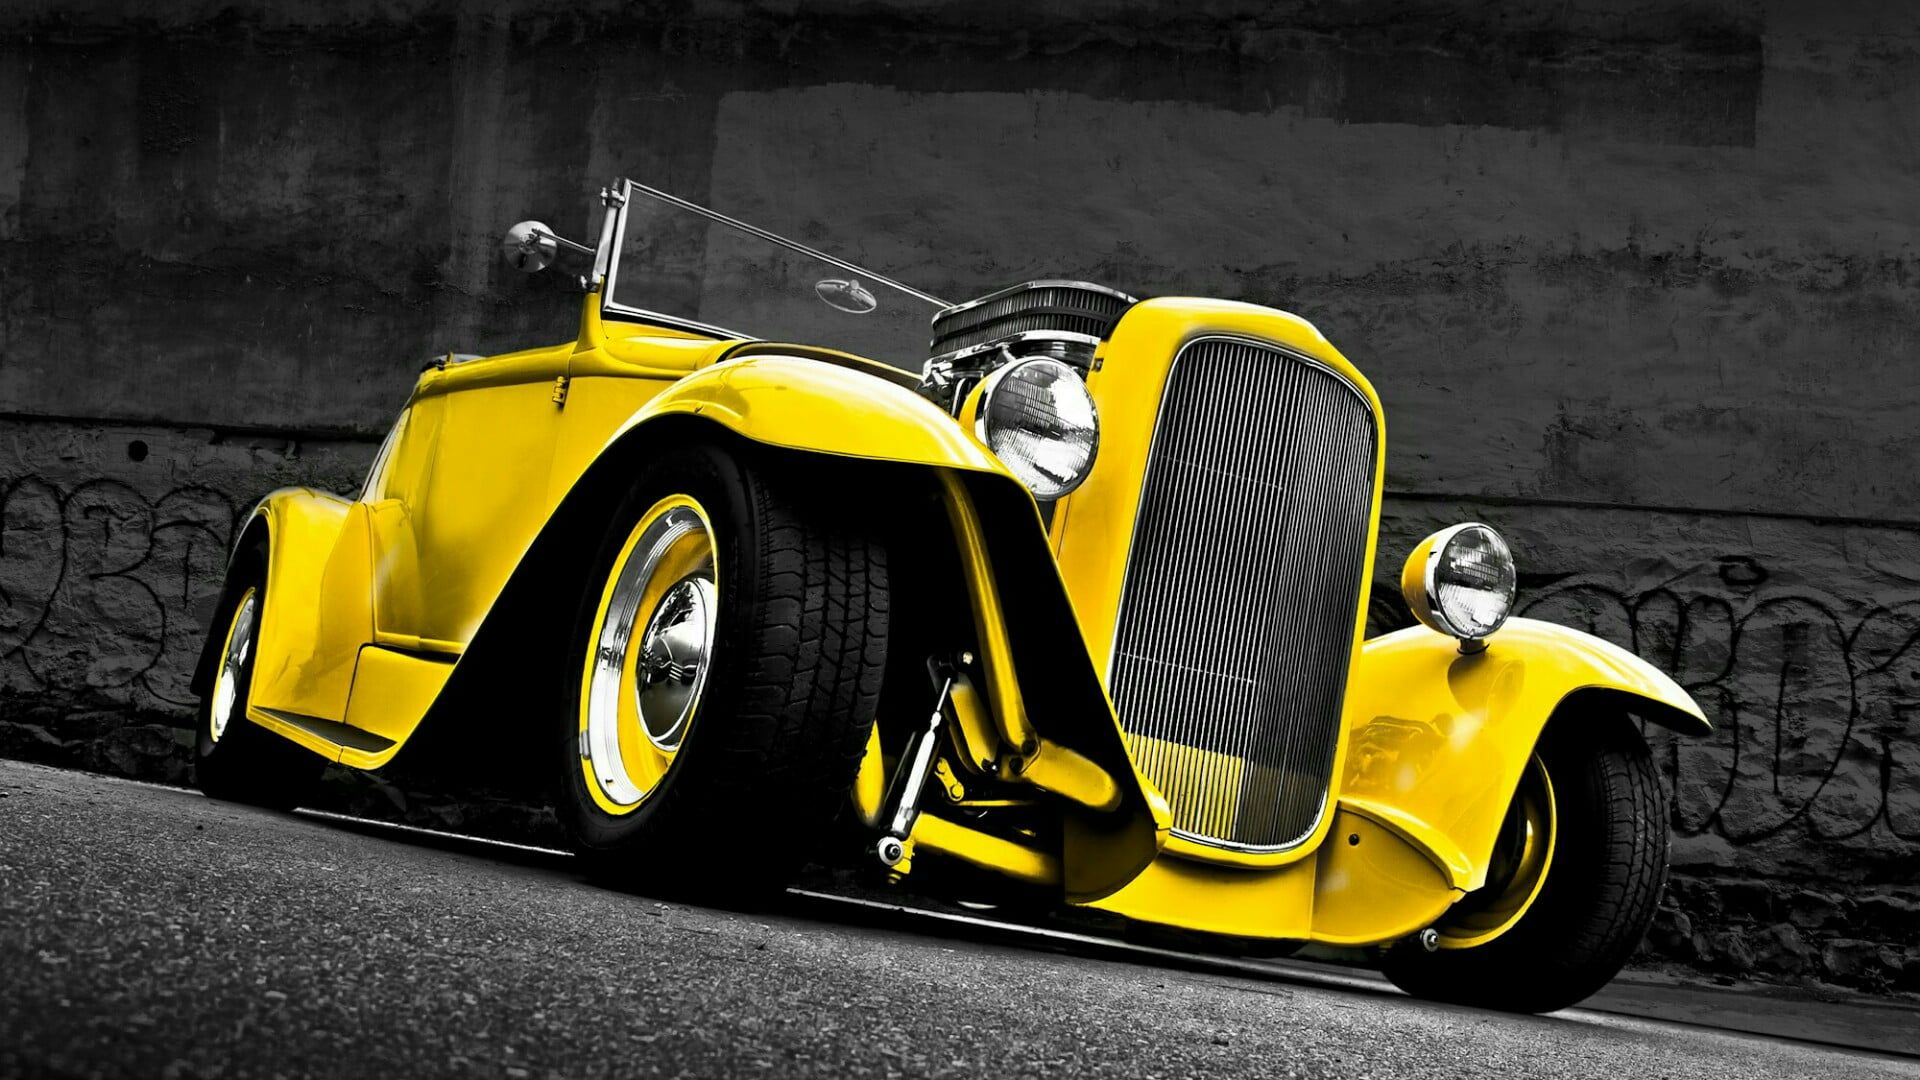 #ford #custom #car motor vehicle #yellow #vehicle classic car retro car vintage …